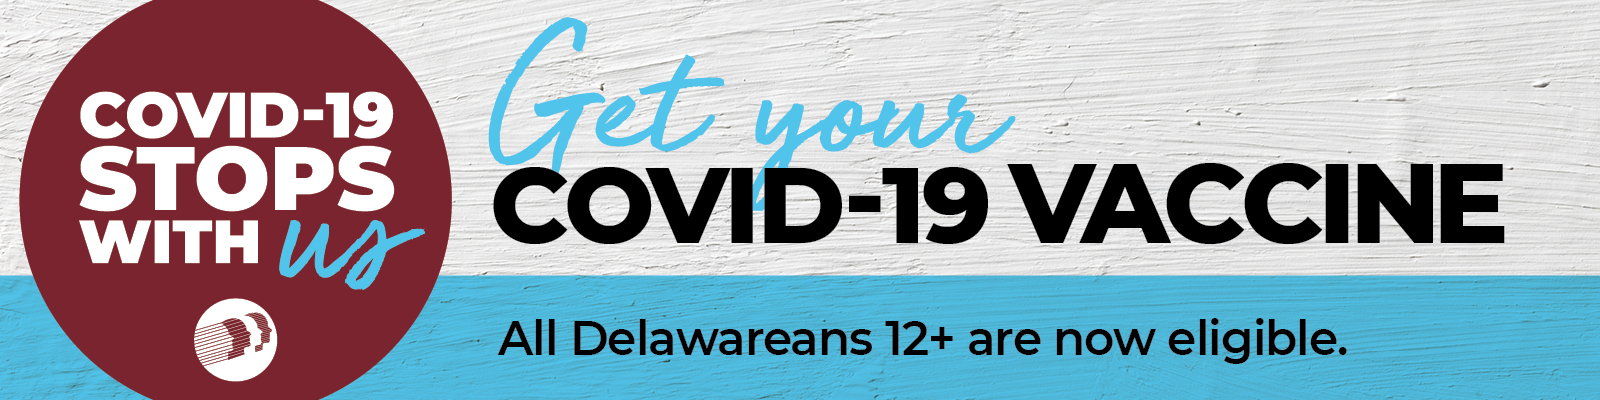 Get your COVID-19 Vaccine. All Delawareans 12+ are now eligible.